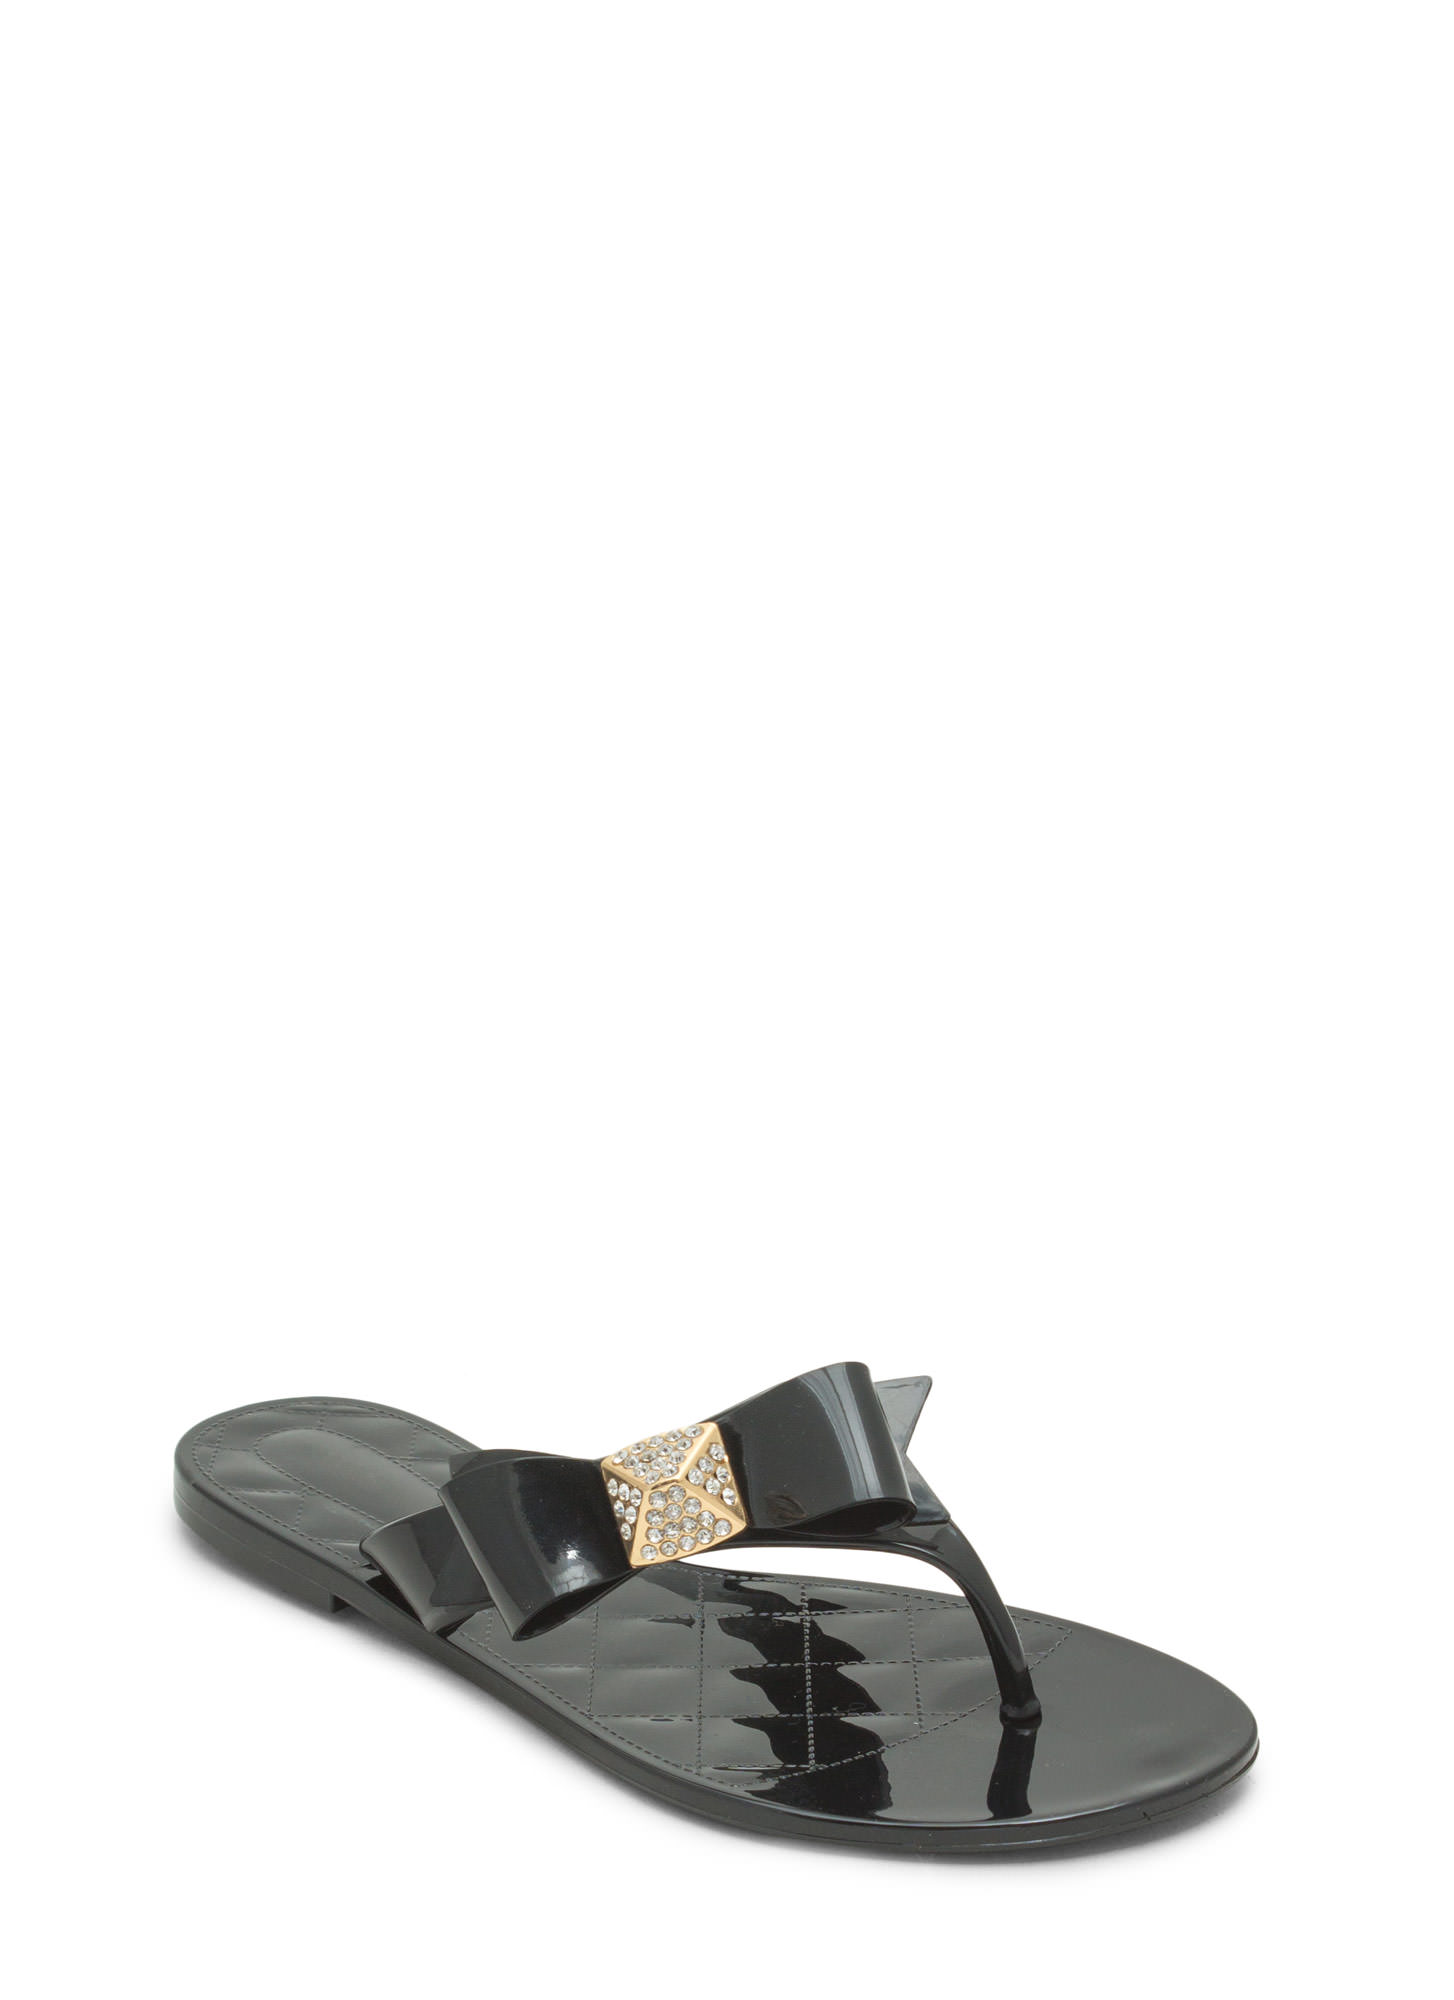 Annual Bow-ness Jelly Thong Sandals BLACK